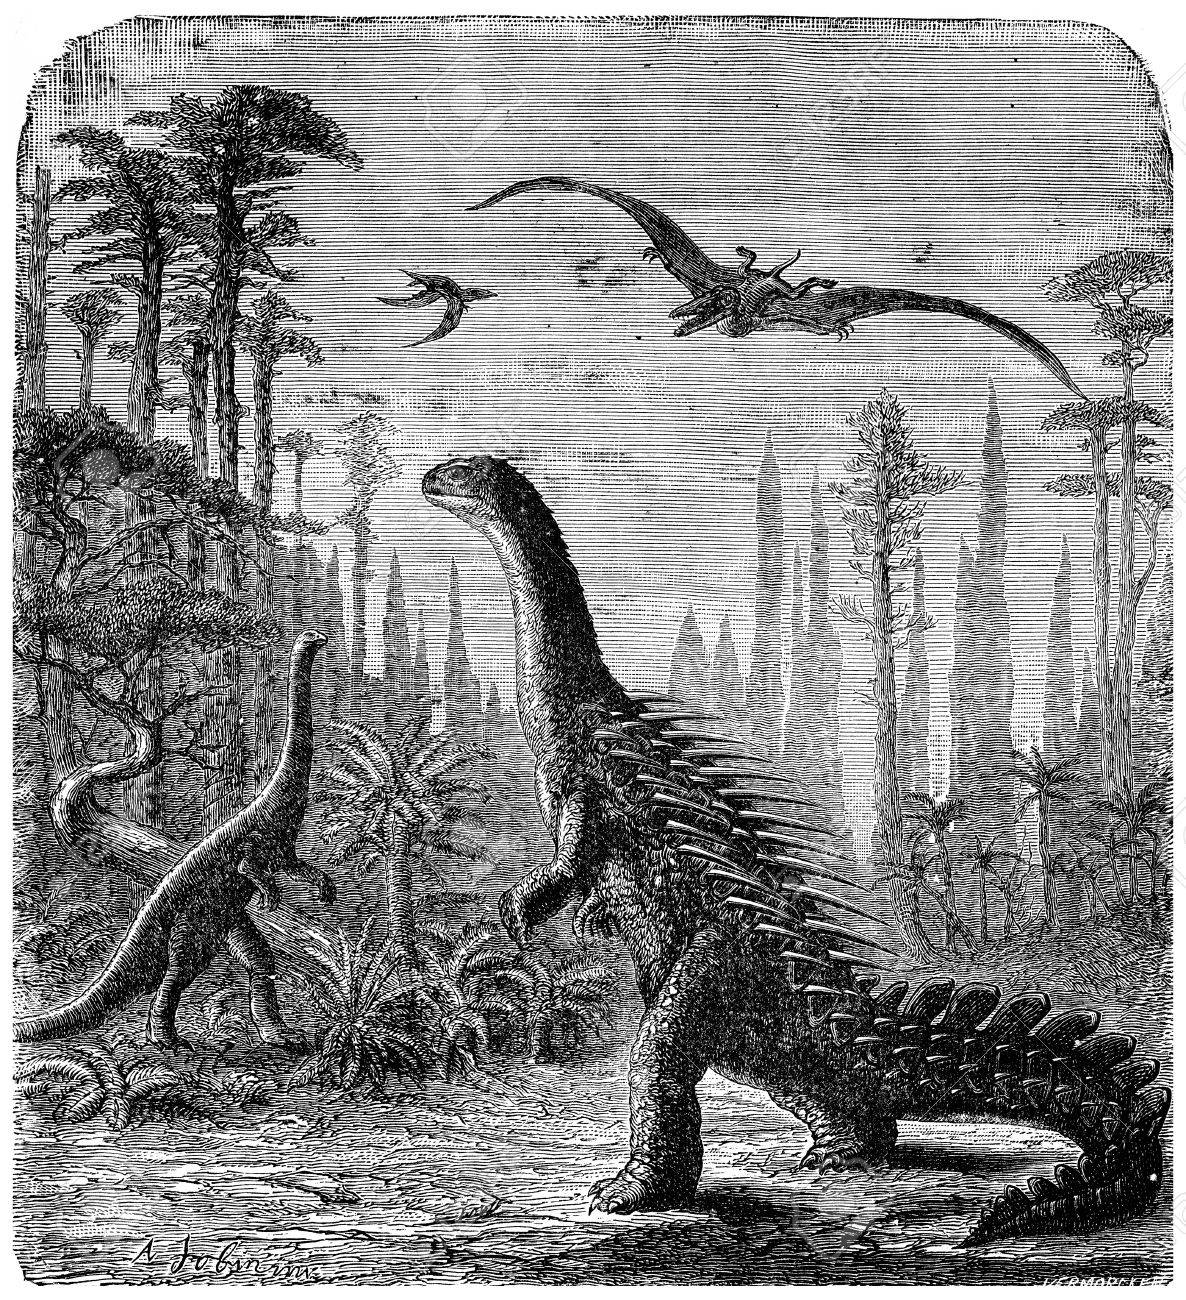 Dinosaurs, Stegosaurus and Compsognathus in an Araucaria landscape., vintage engraved illustration. Earth before man – 1886. - 39515528